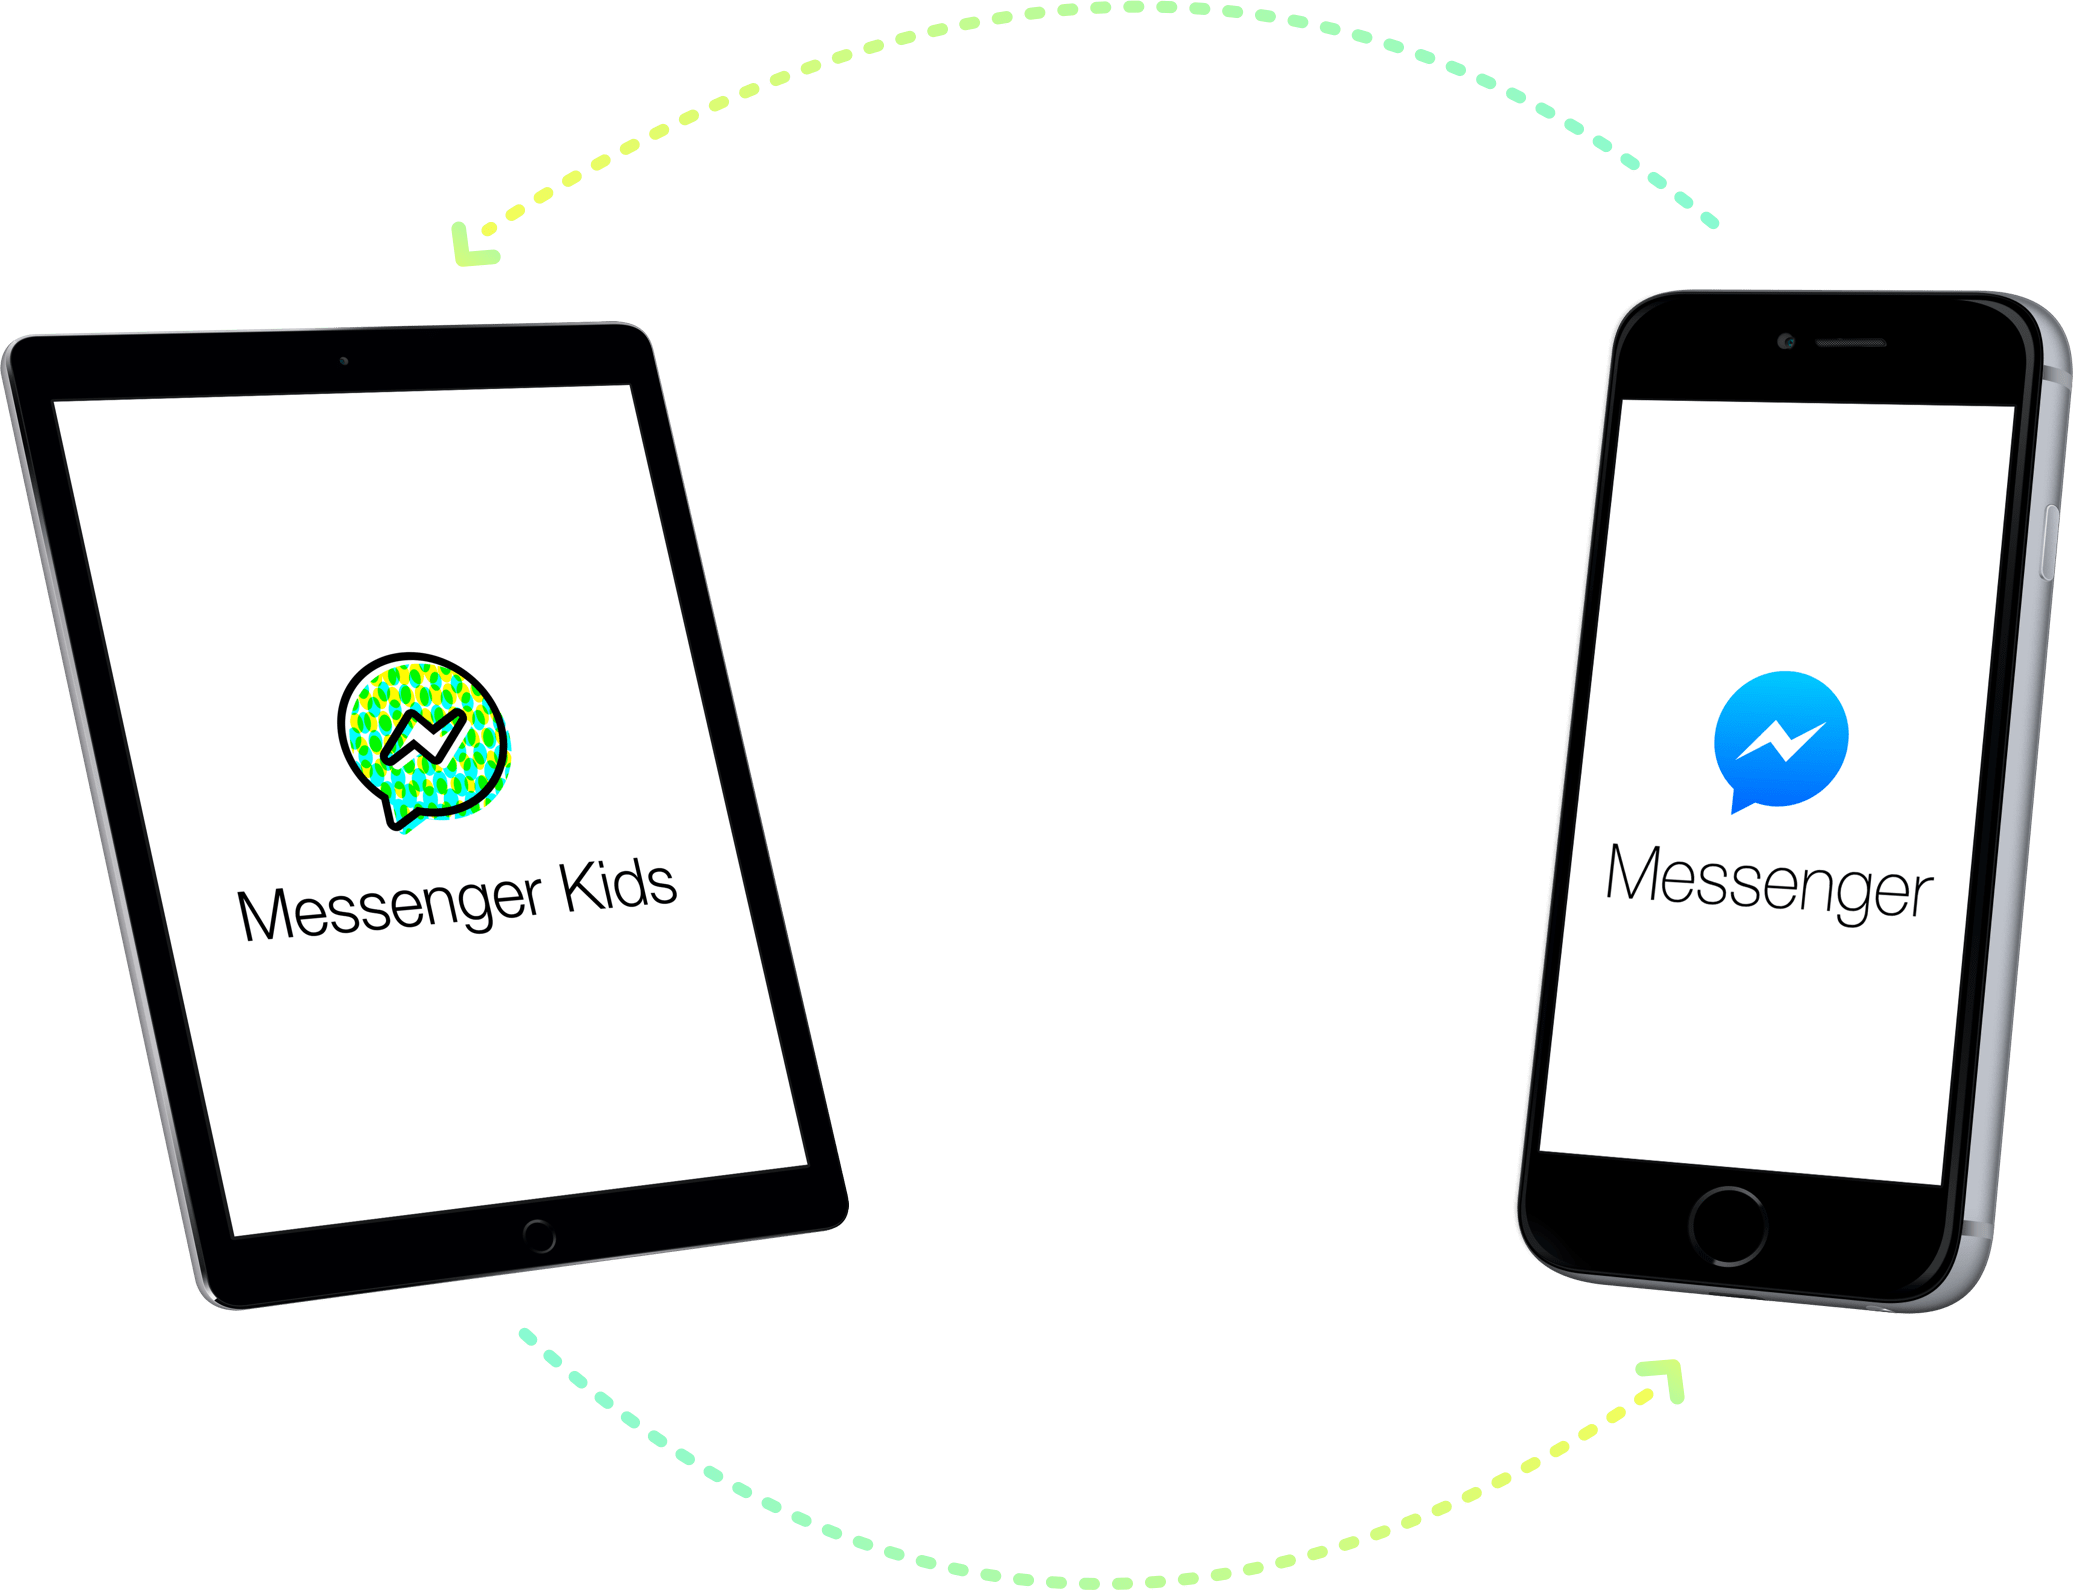 tablet messenger app for kids Teaching, Product launch